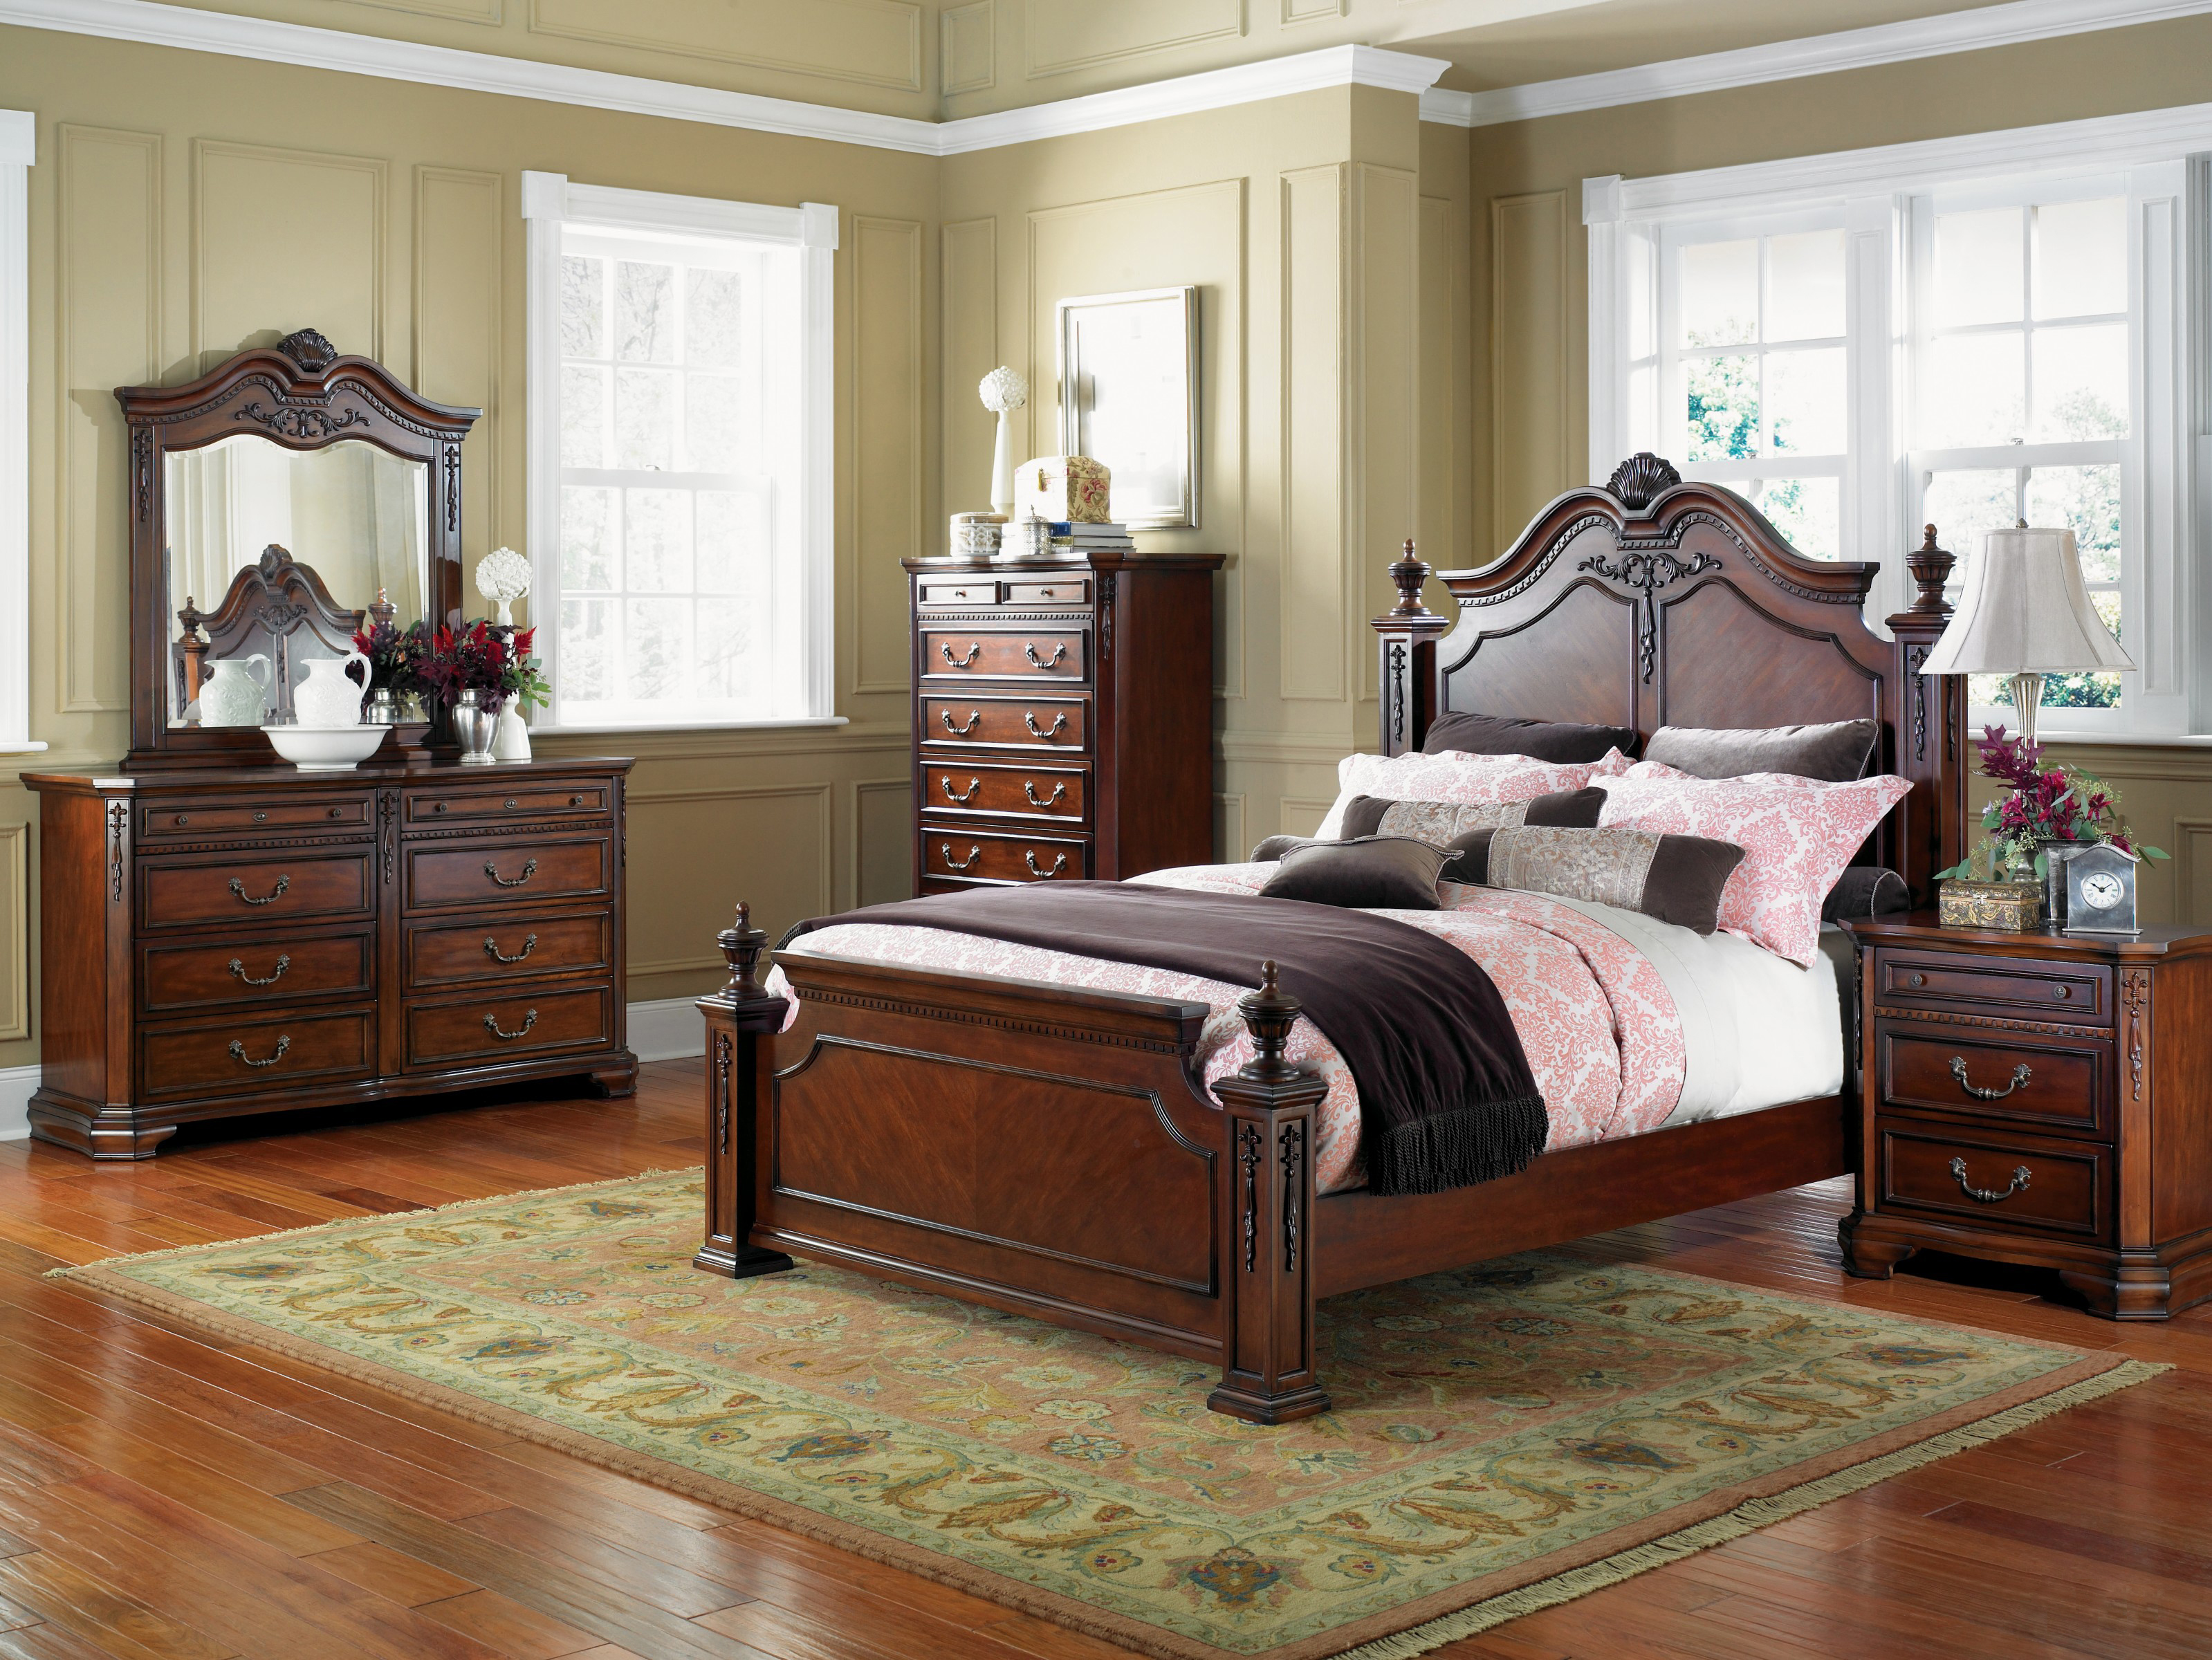 Brilliant Bedroom Furniture 3198 x 2400 · 3937 kB · jpeg